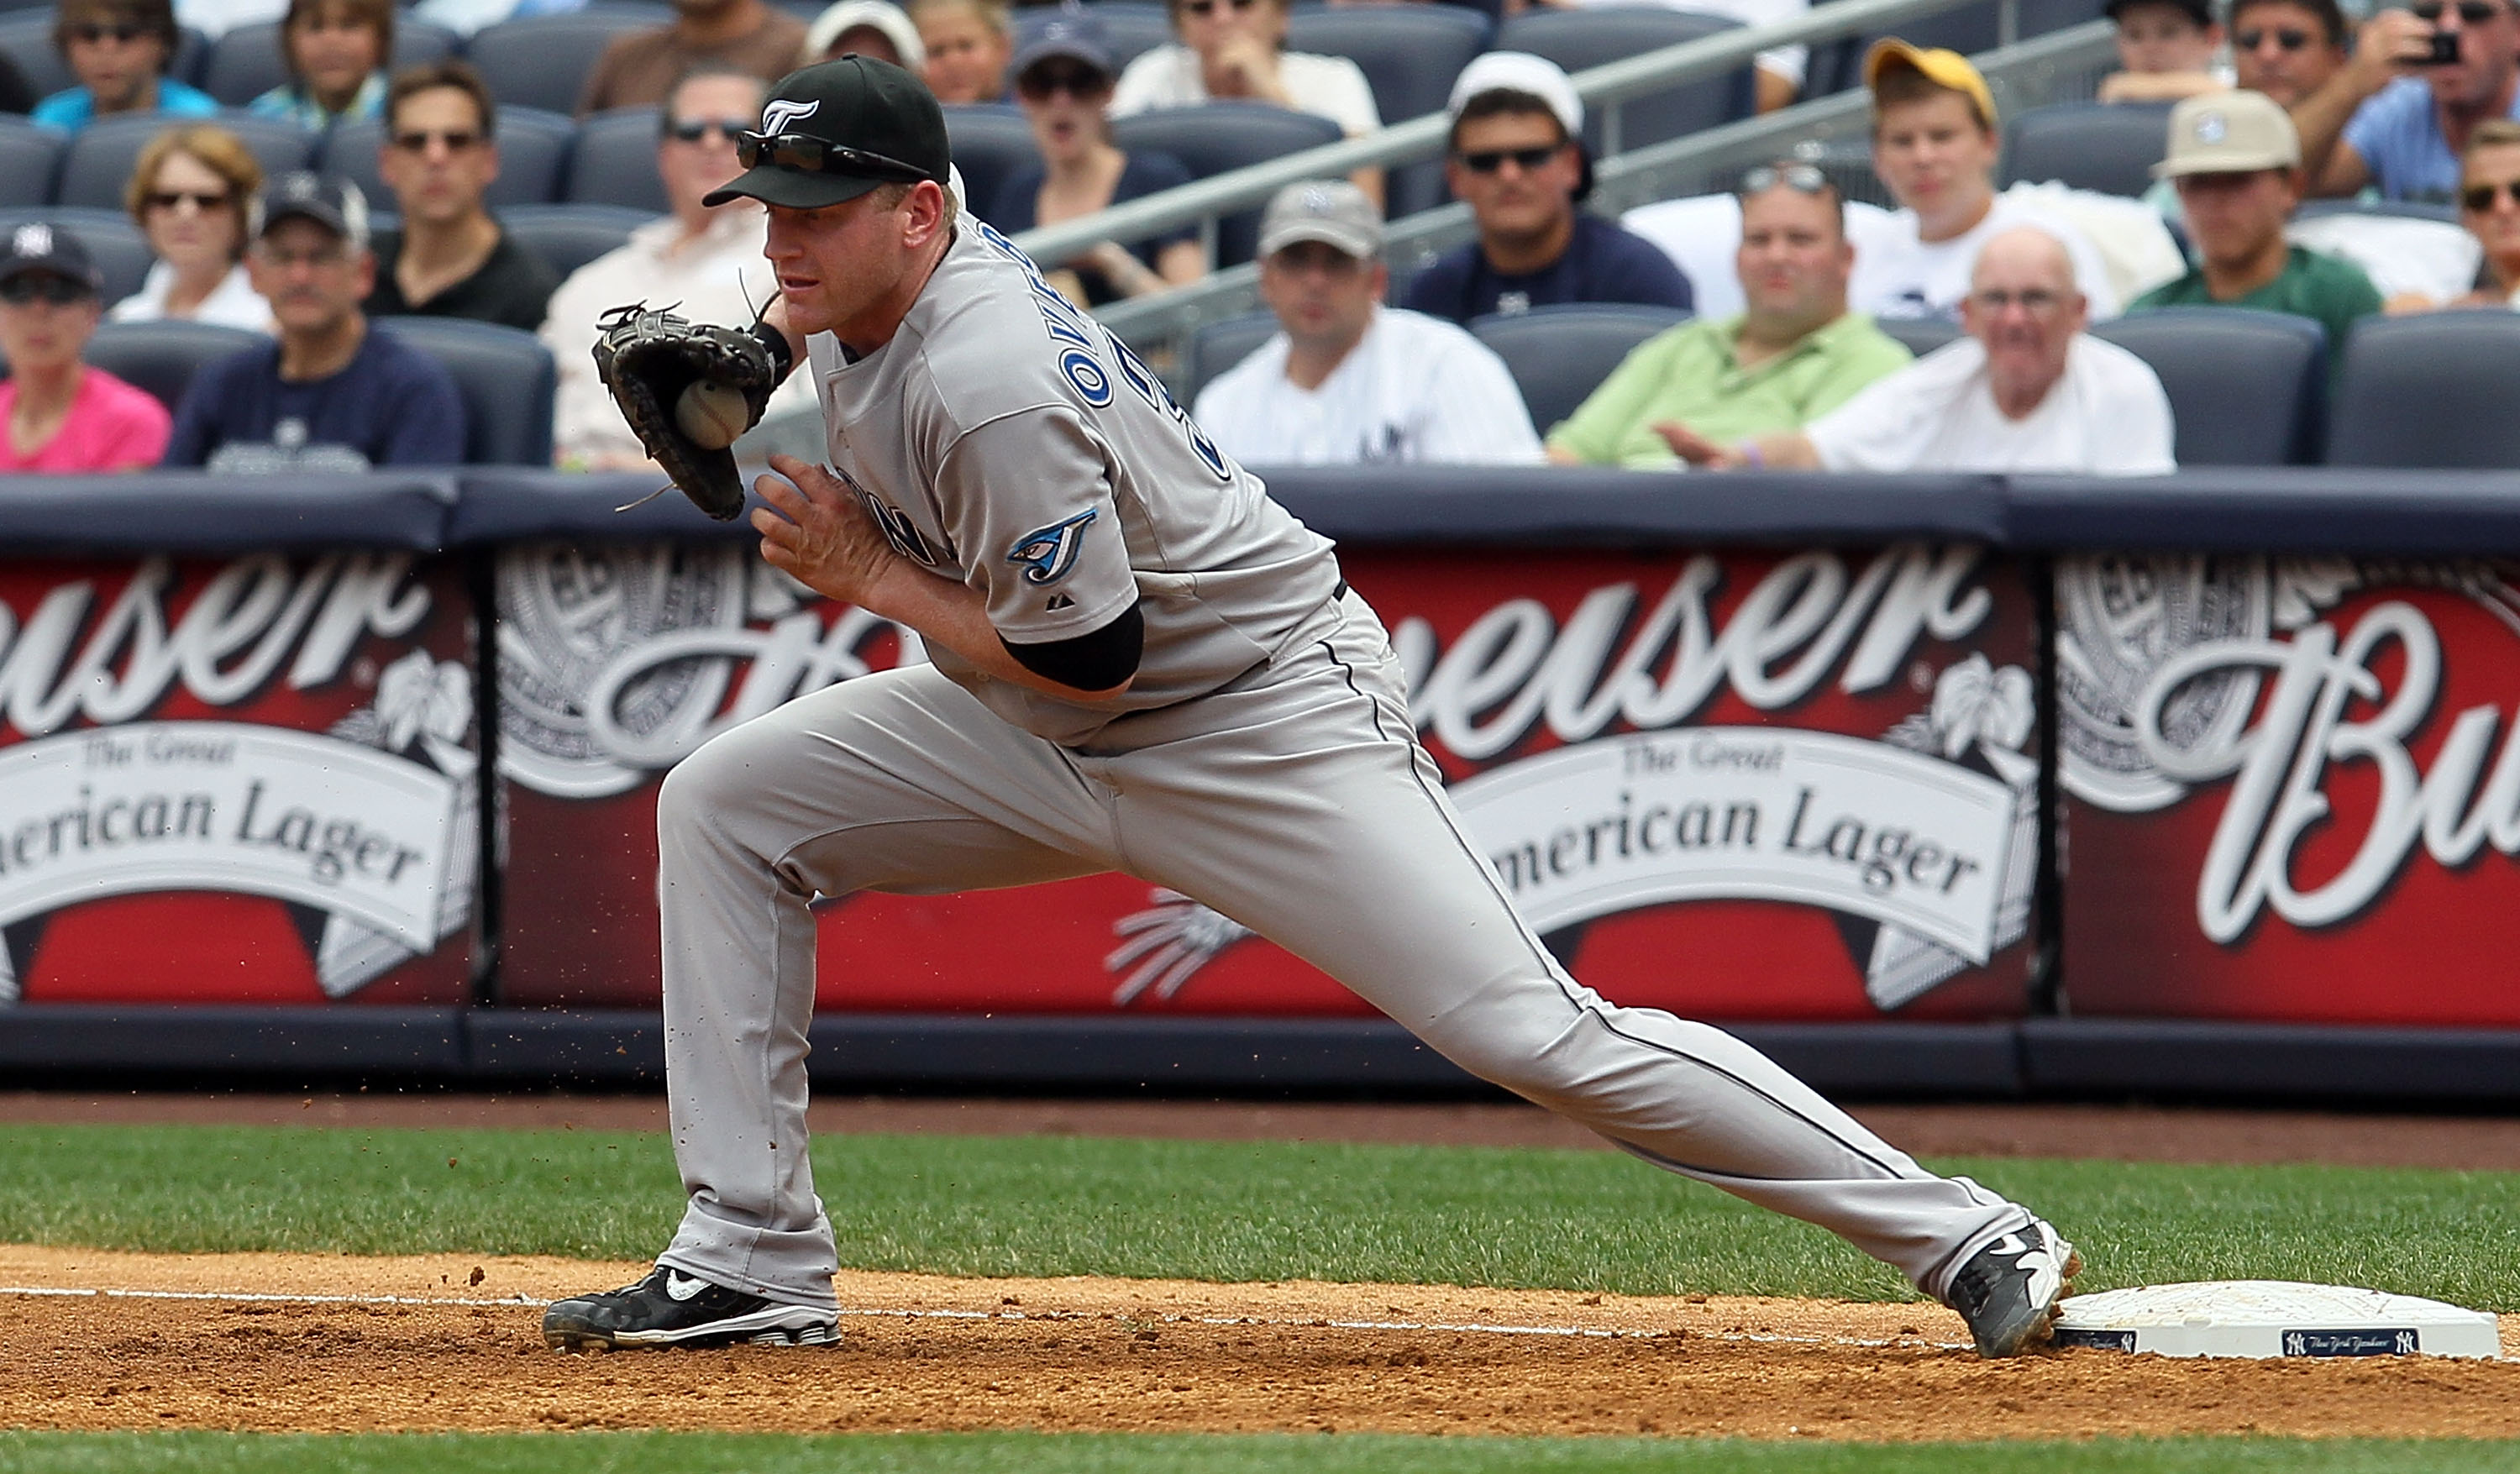 1B Lyle Overbay, picked up off free agency in December 2010